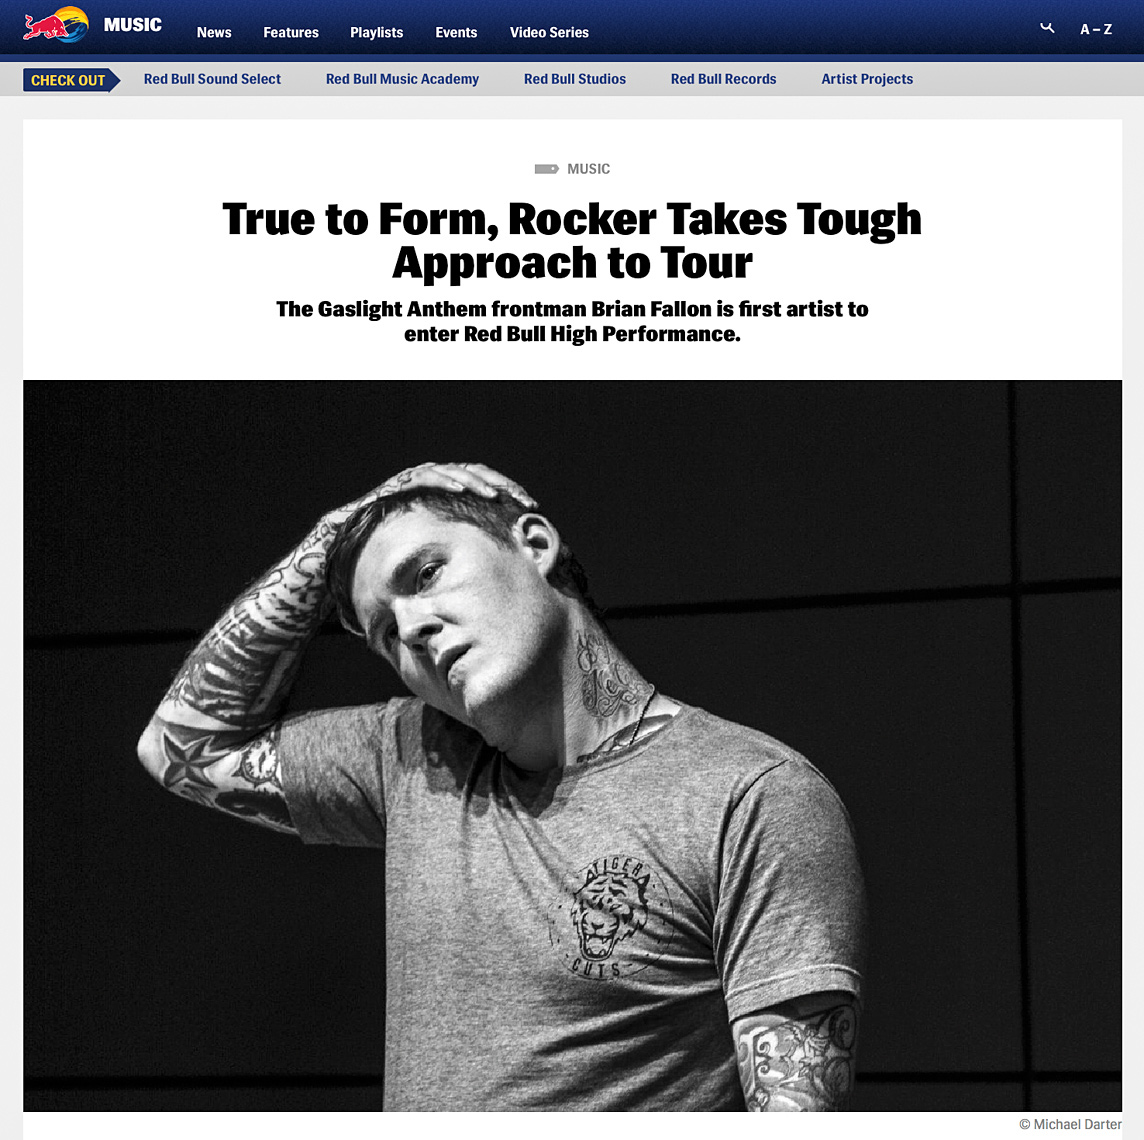 Brian Fallon, Red Bull High Performance